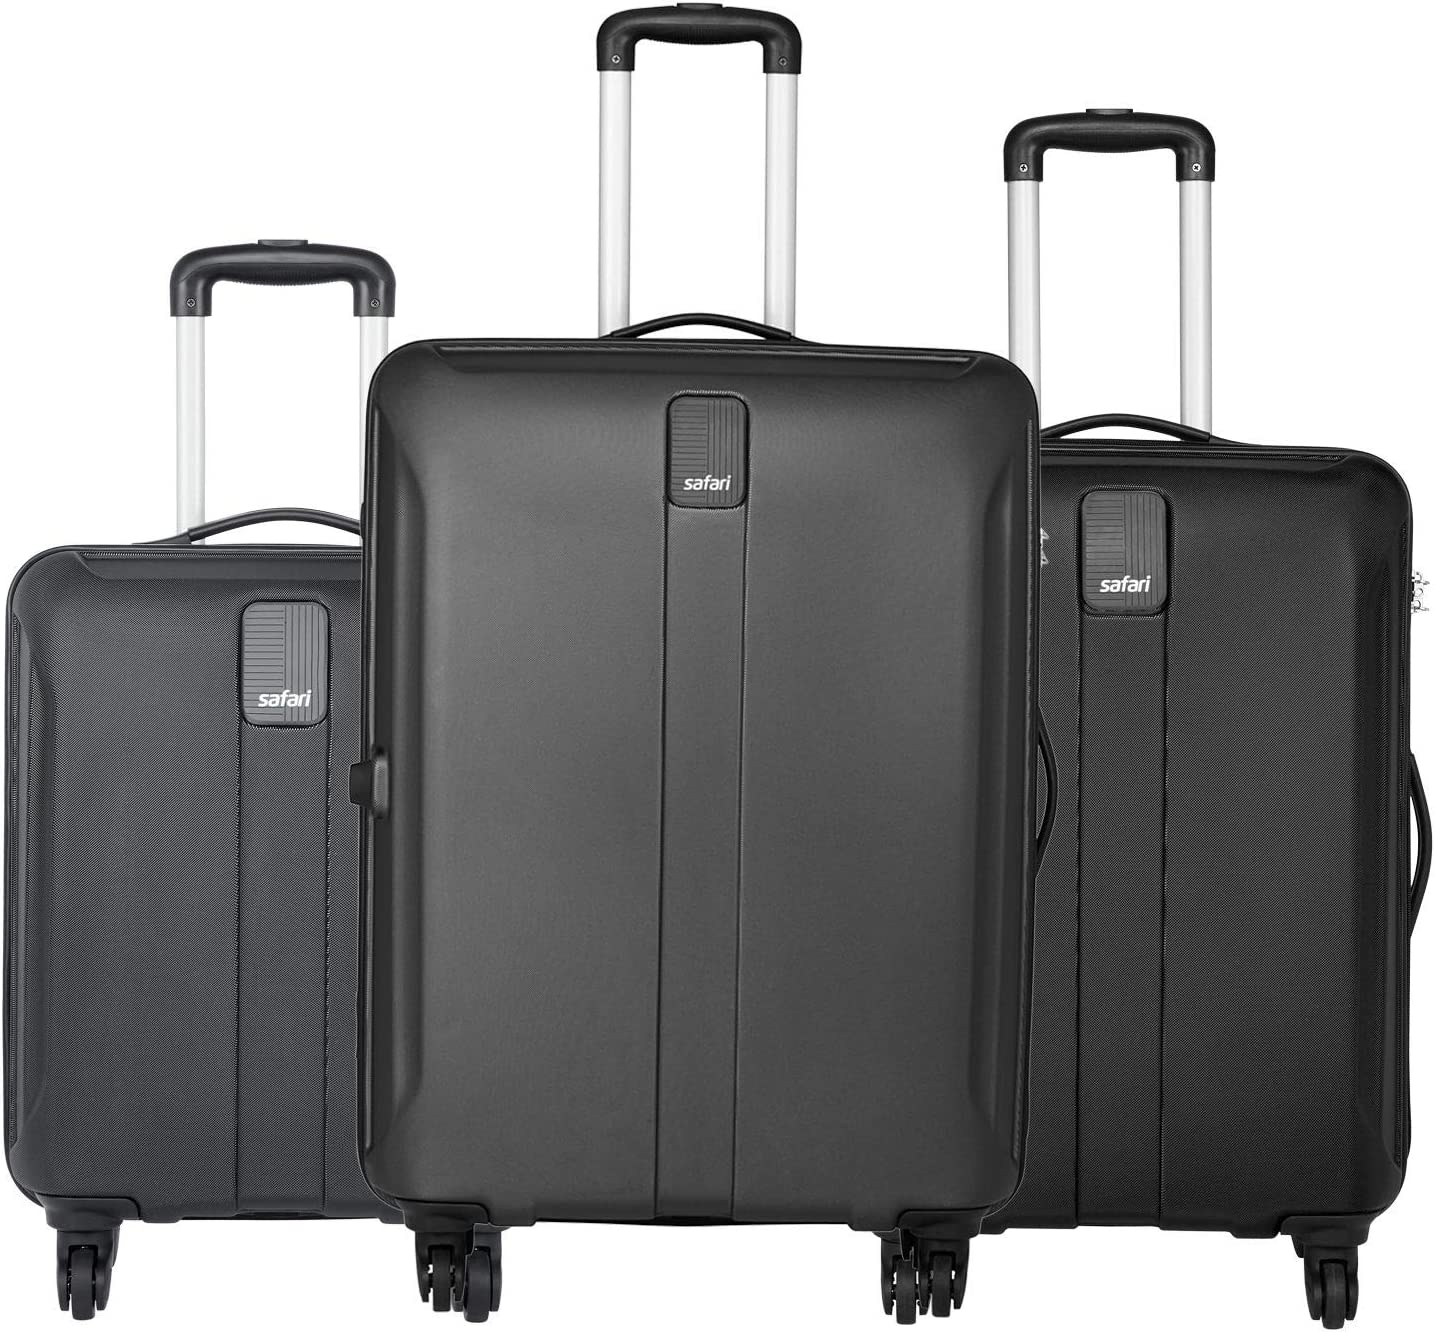 [Apply coupon Safari Thorium Sharp Anti-Scratch Combo Set of 3 Black Small, Medium & Large Check-in 4 Wheel Hard Suitcase